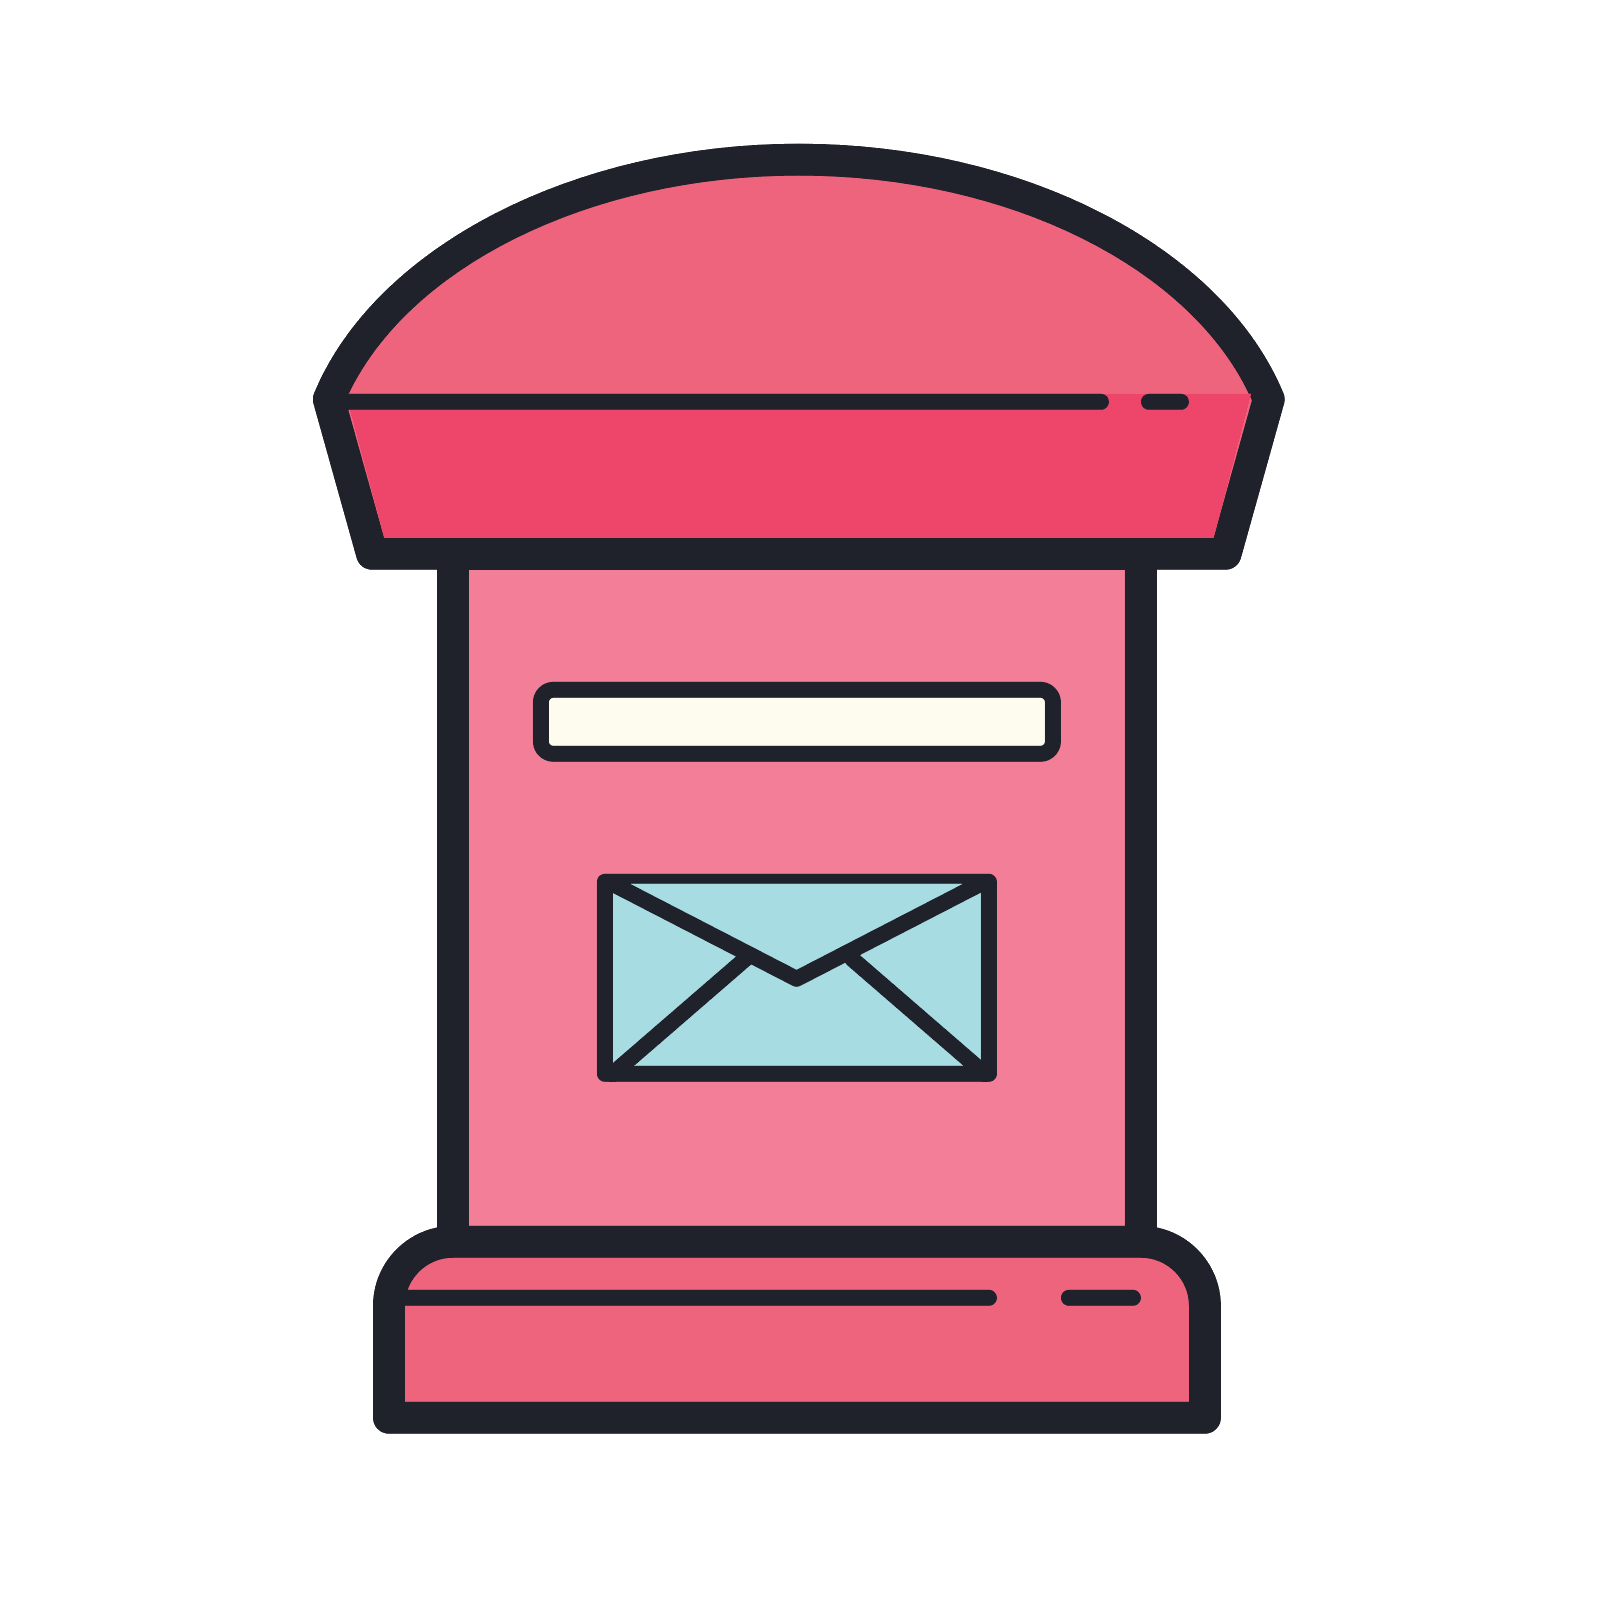 Mailbox icon free download. Postit vector pink royalty free